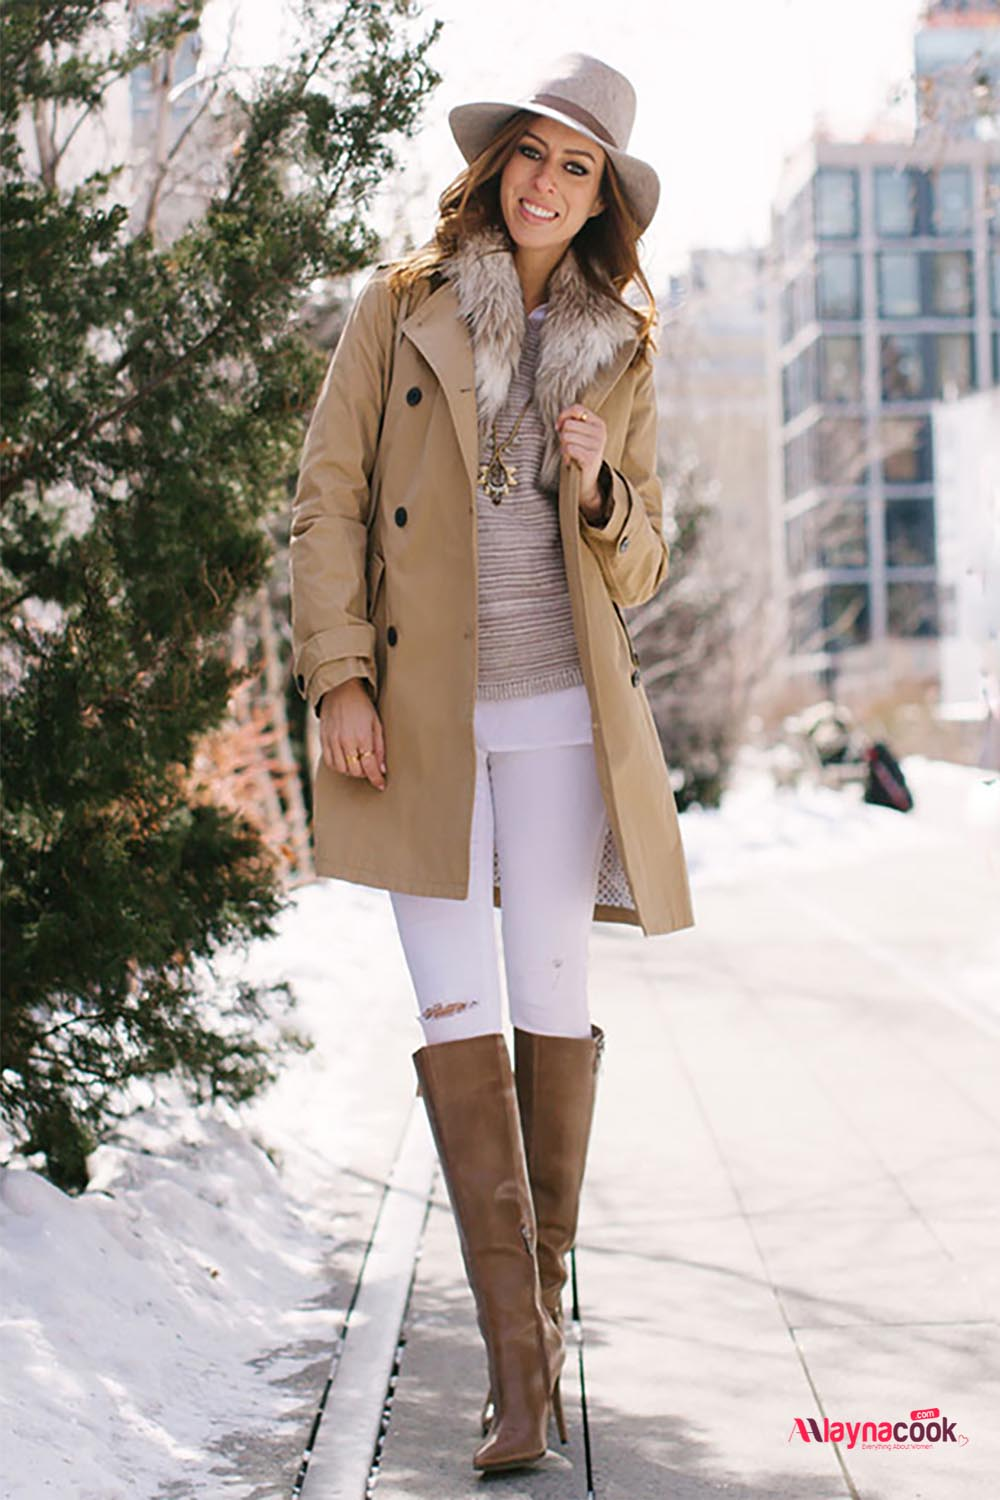 The best winter outfit